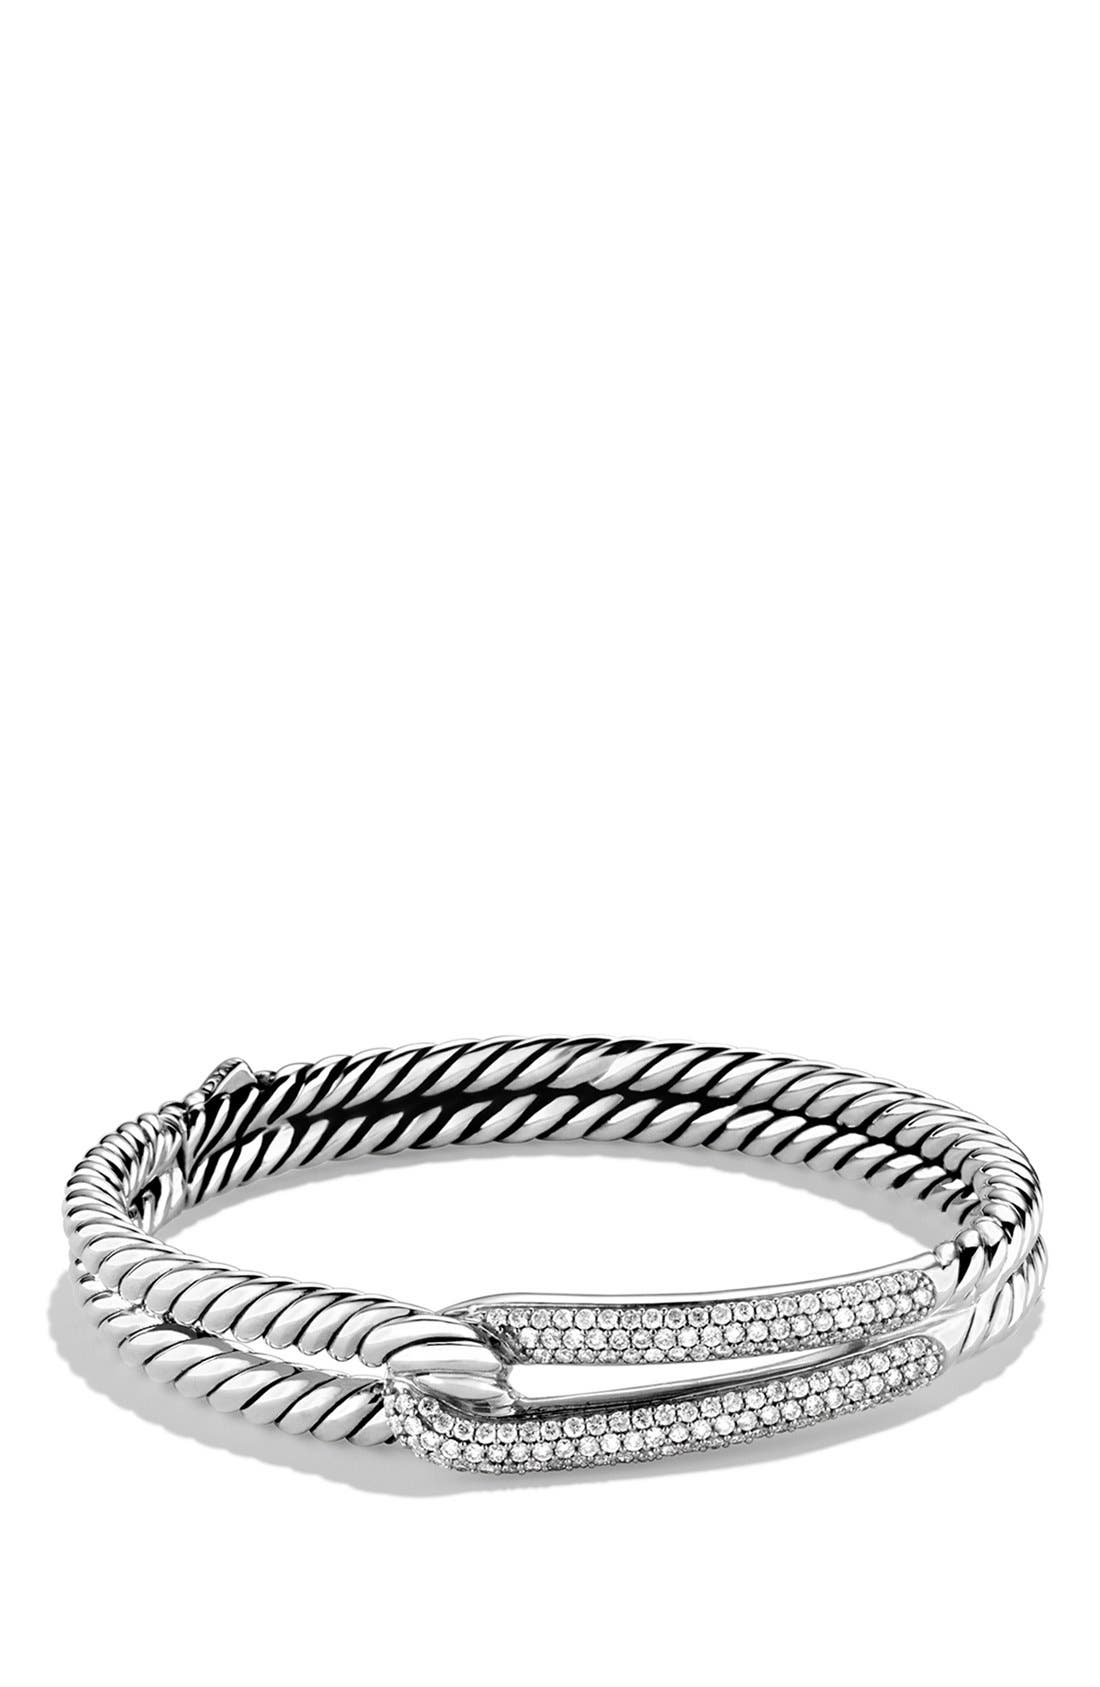 'Labyrinth' Single-Loop Bracelet with Diamonds,                         Main,                         color, Diamond